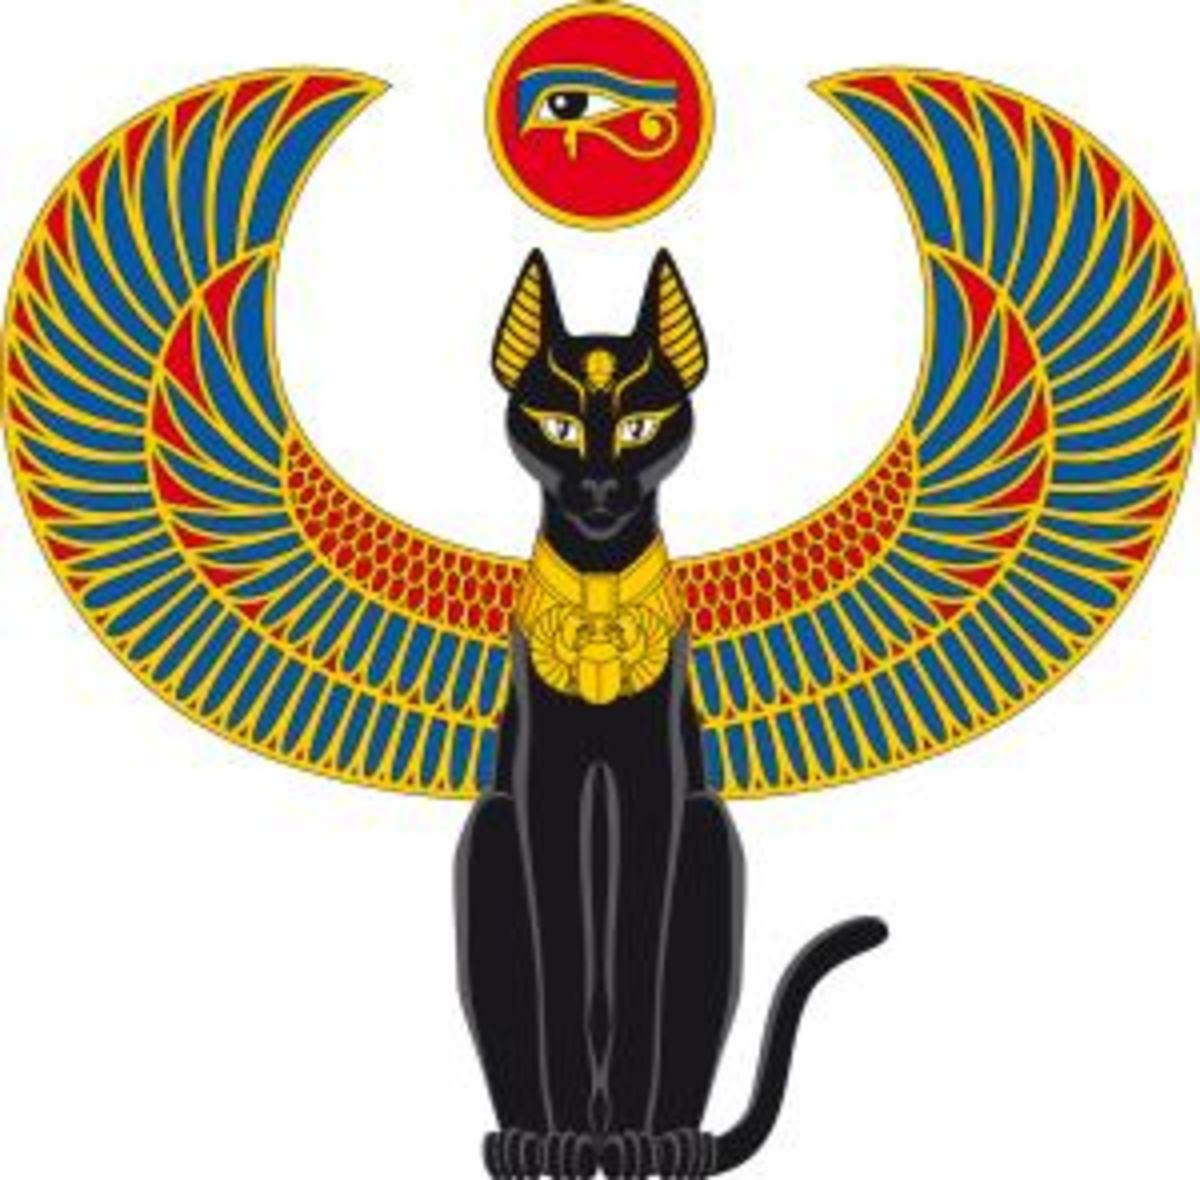 The cat has been here with us from the beginning guiding our human minds to love and acceptance.